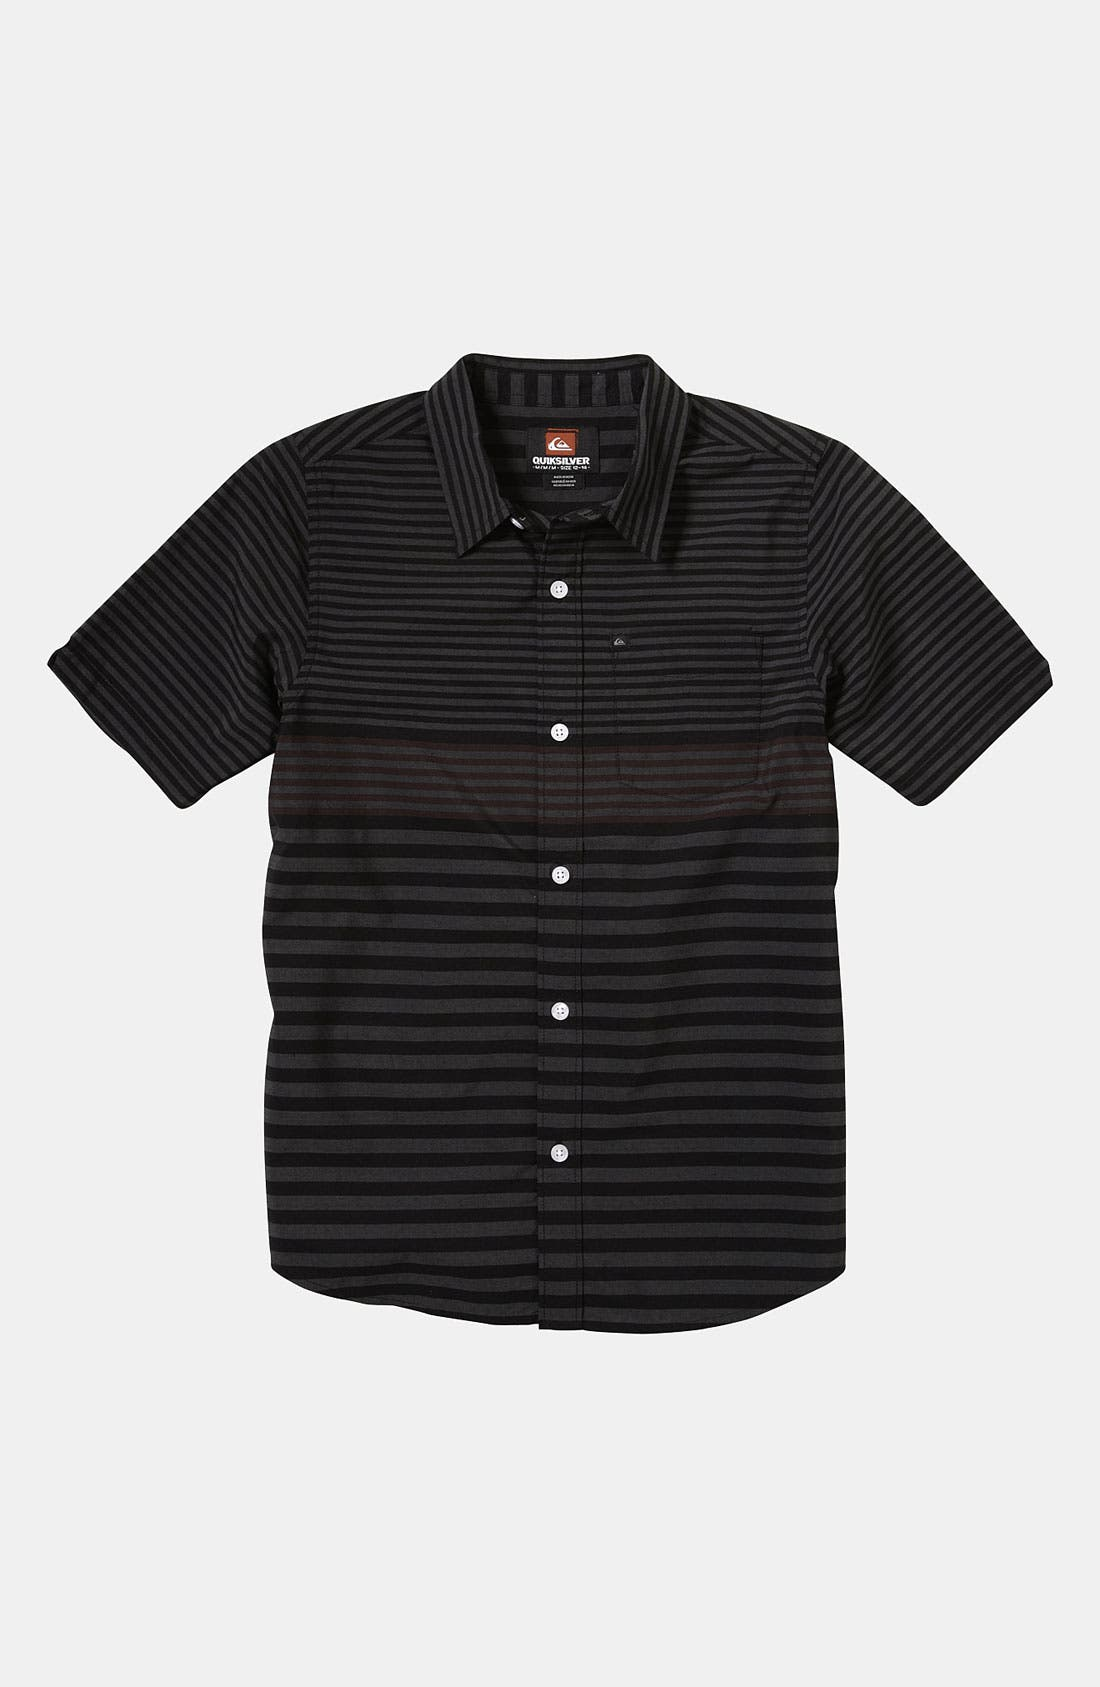 Alternate Image 1 Selected - Quiksilver 'Moving Seats' Woven Shirt (Big Boys)